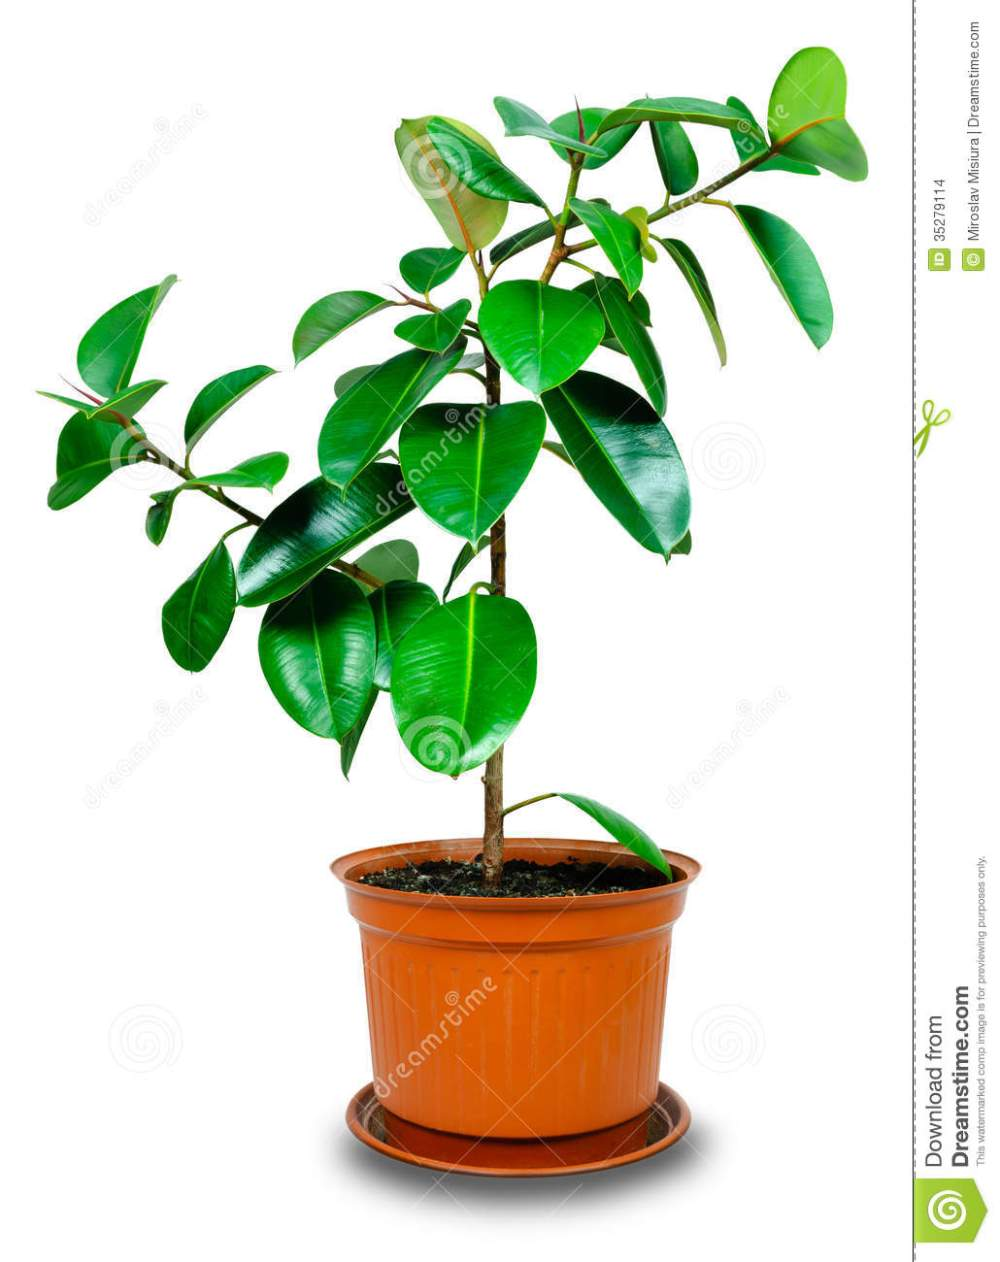 medium resolution of potted plant clipart